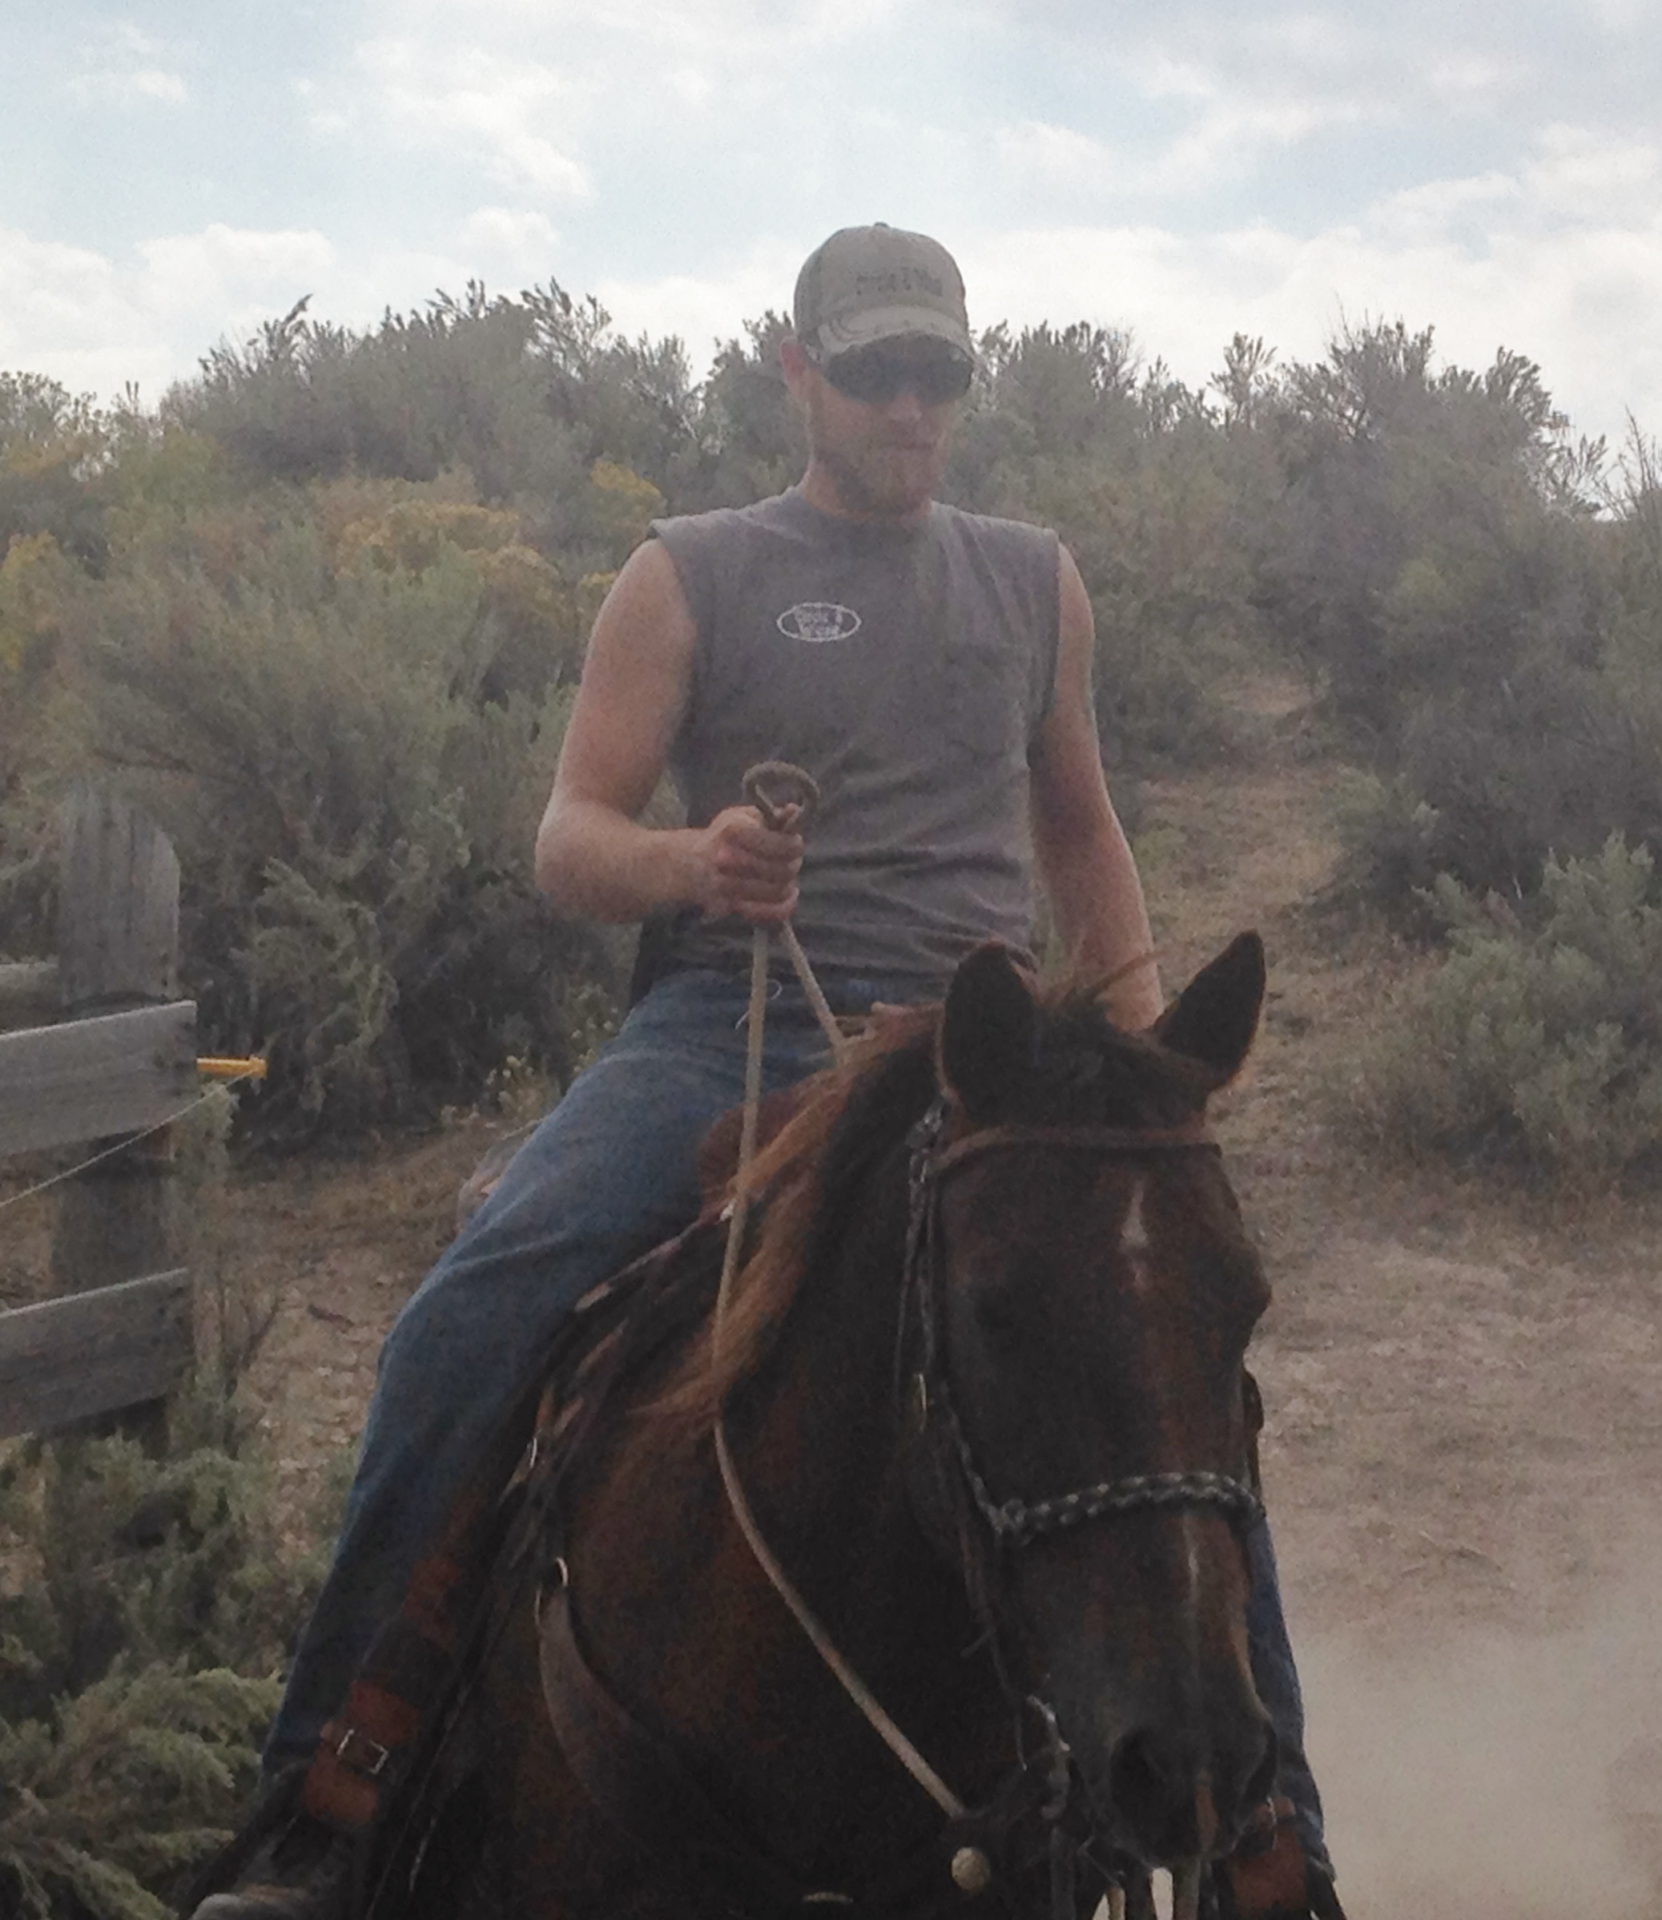 Partner Garret Ward Horseback ride home after long day pushing cows to be worked